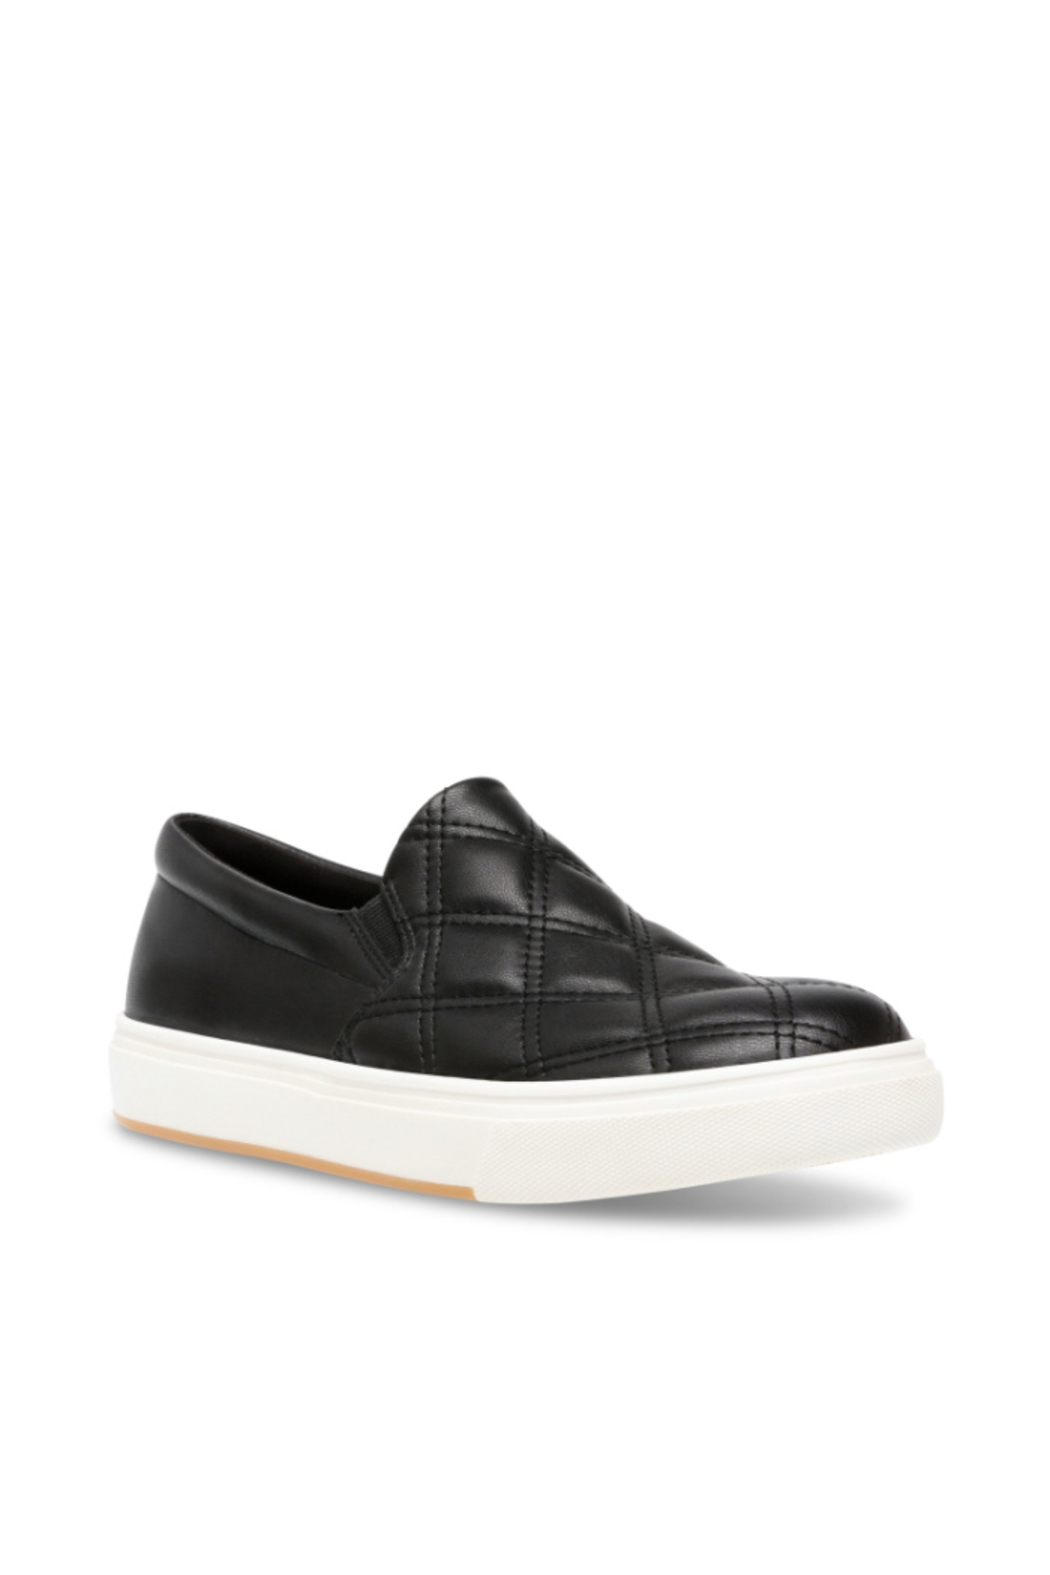 Steve Madden Women's Coulter Quilted in Black - Main Image